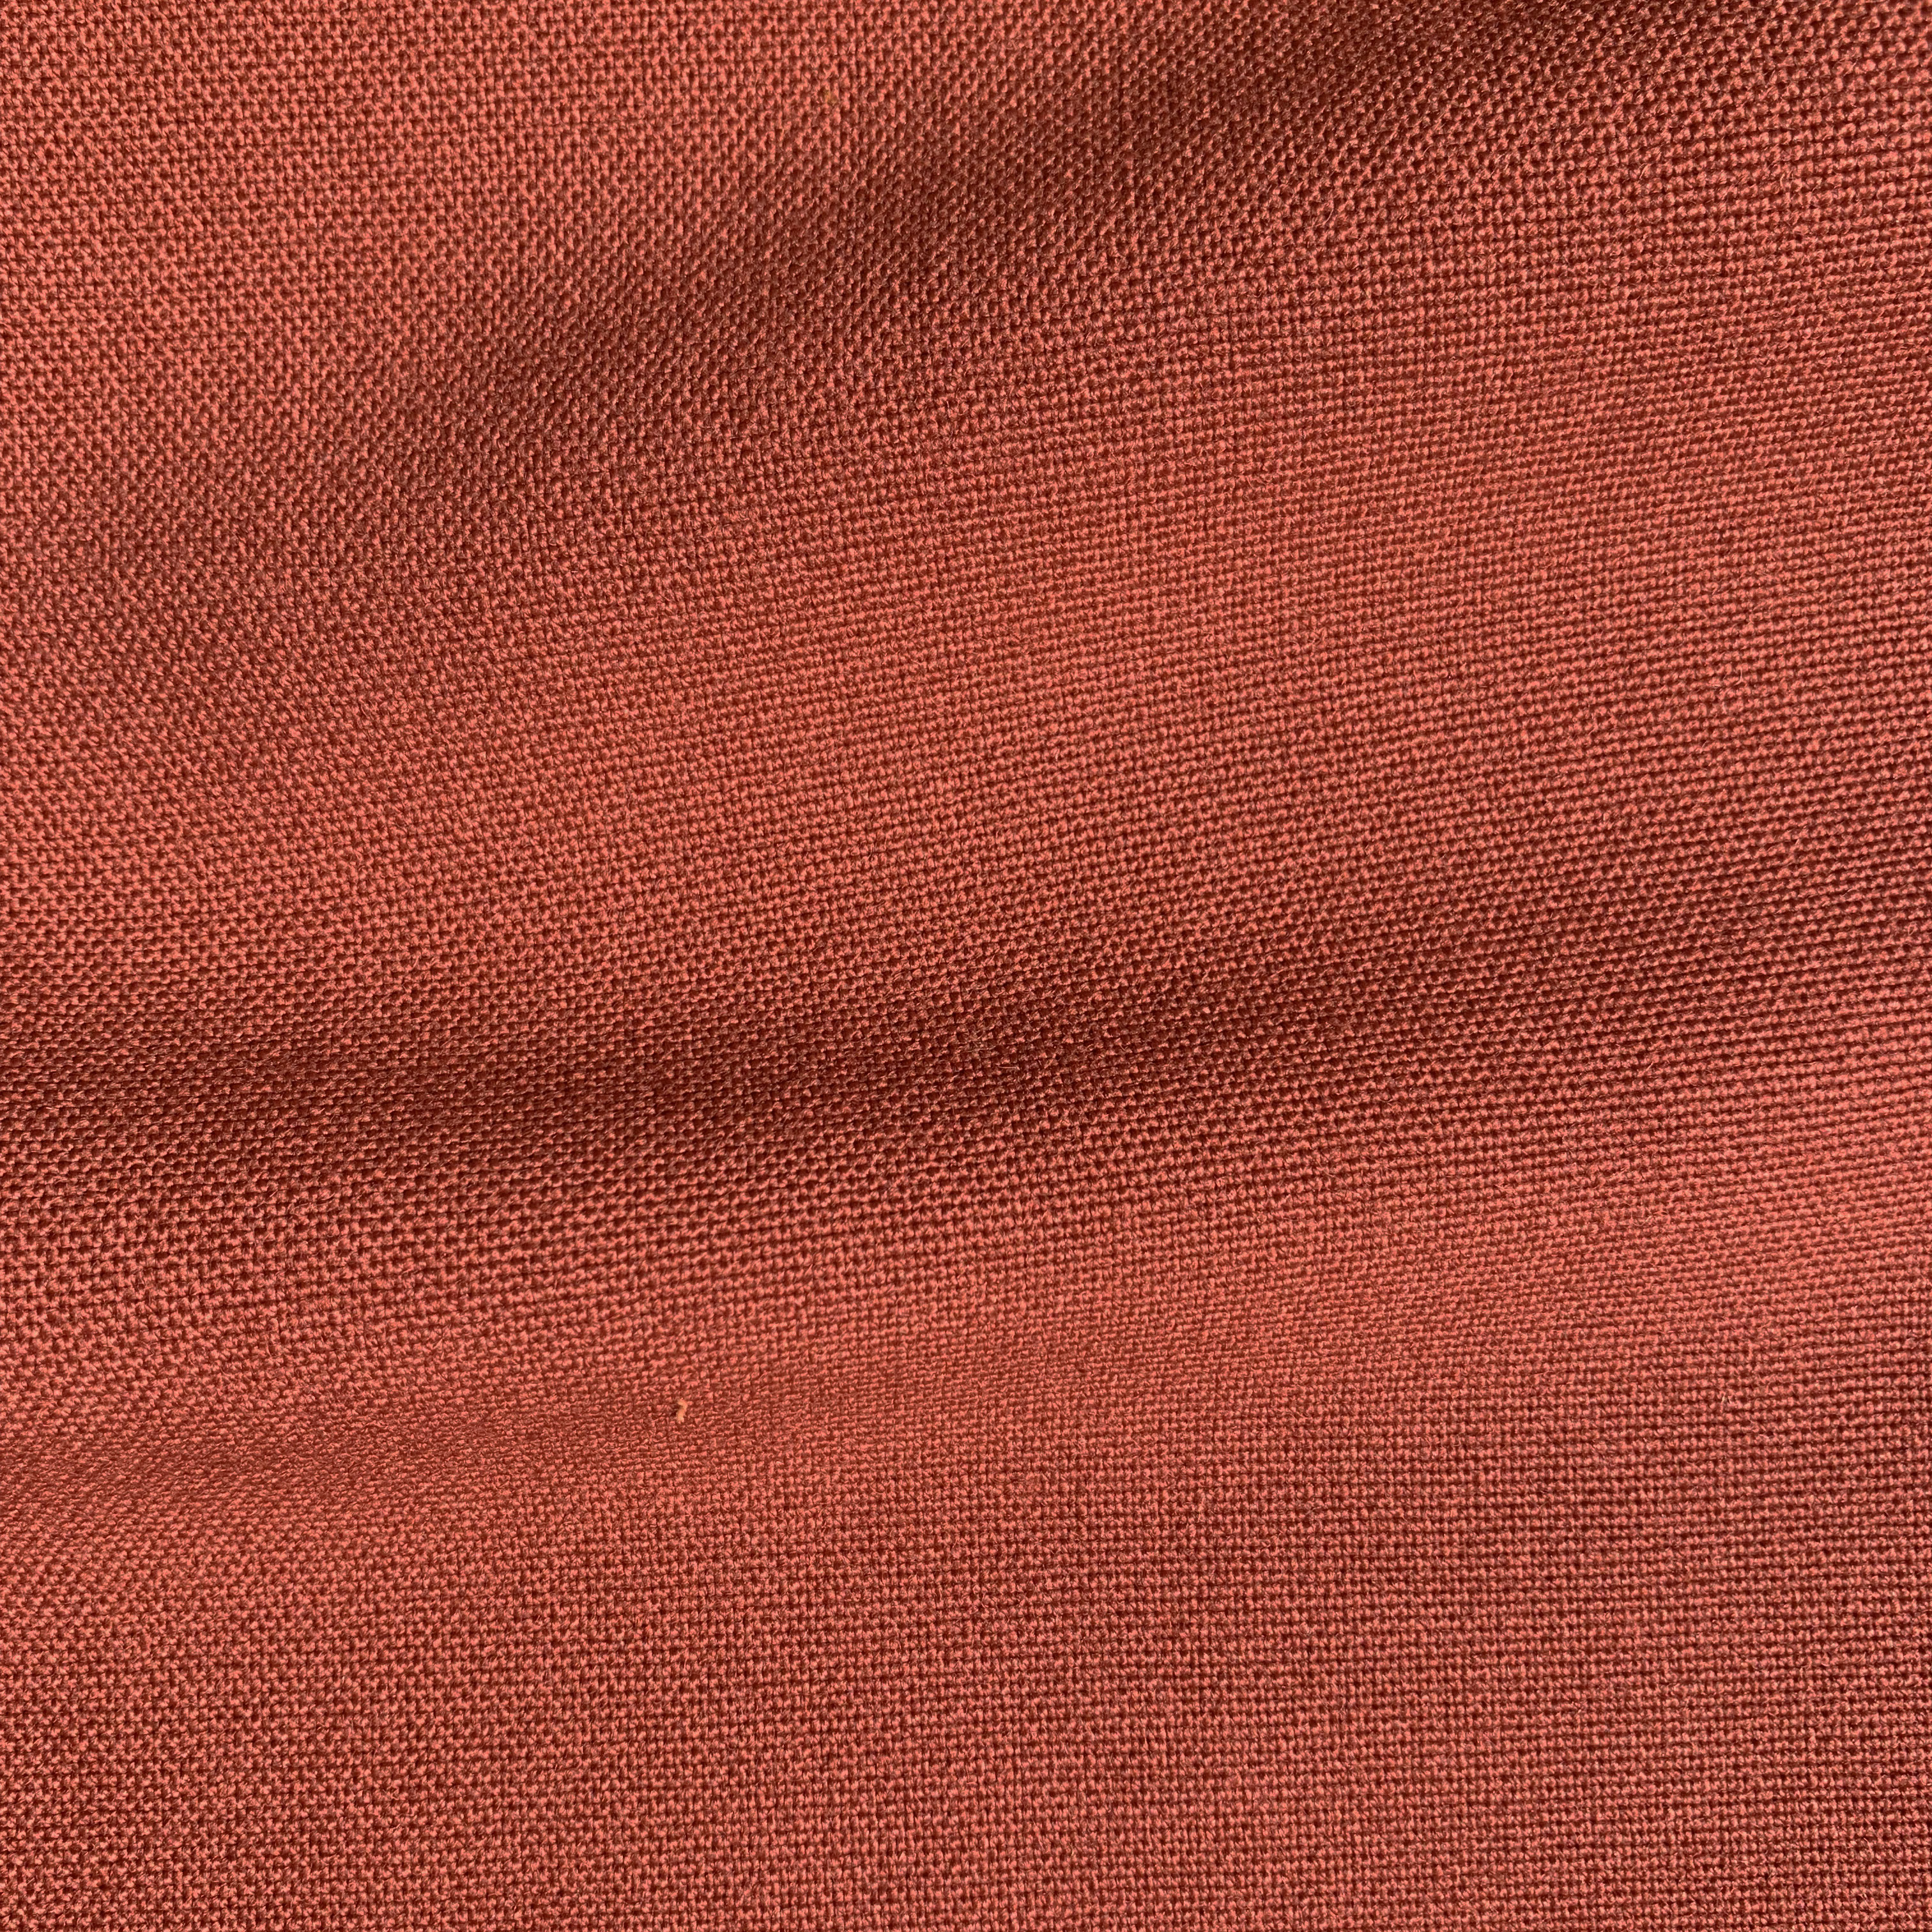 Russet fabric from the Sustainable Cord range by Sustainable Living Fabrics